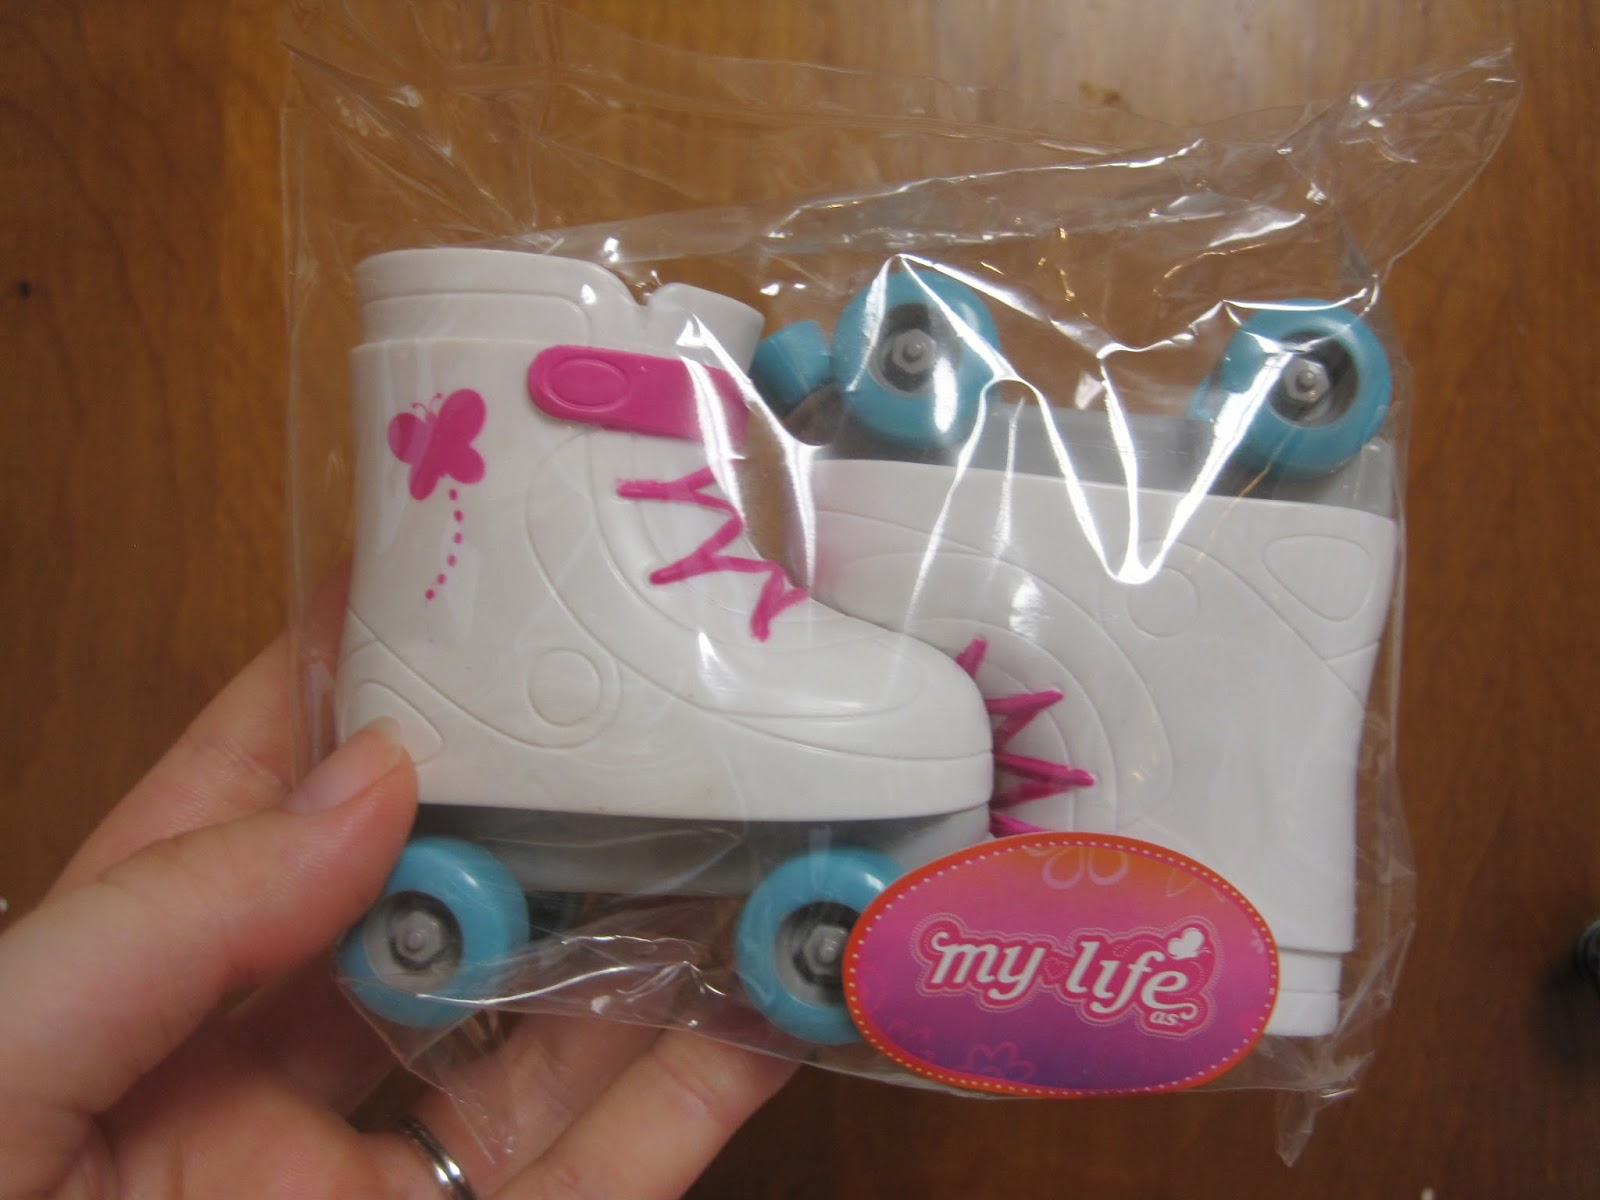 Frozen roller skates walmart - I Checked Walmart Online And Found A Few Links To The New Things Only One Doll Is There So Far But It S One Of The Two That Was In Our Store